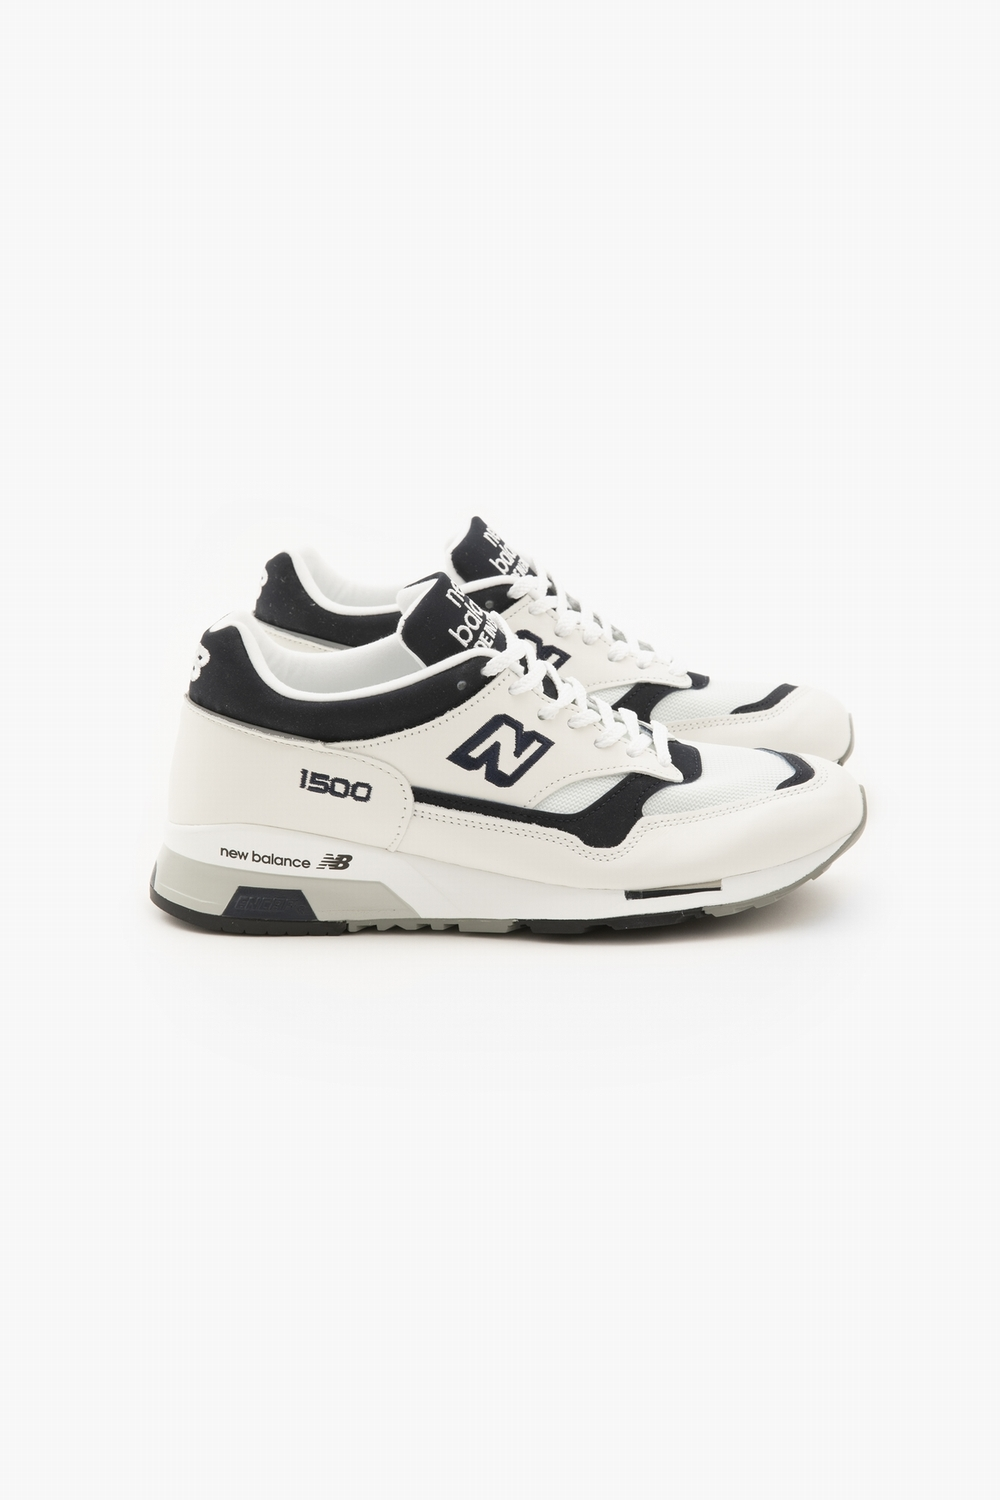 factory authentic dad7b dd2d9 NEW BALANCE 1500 WWN